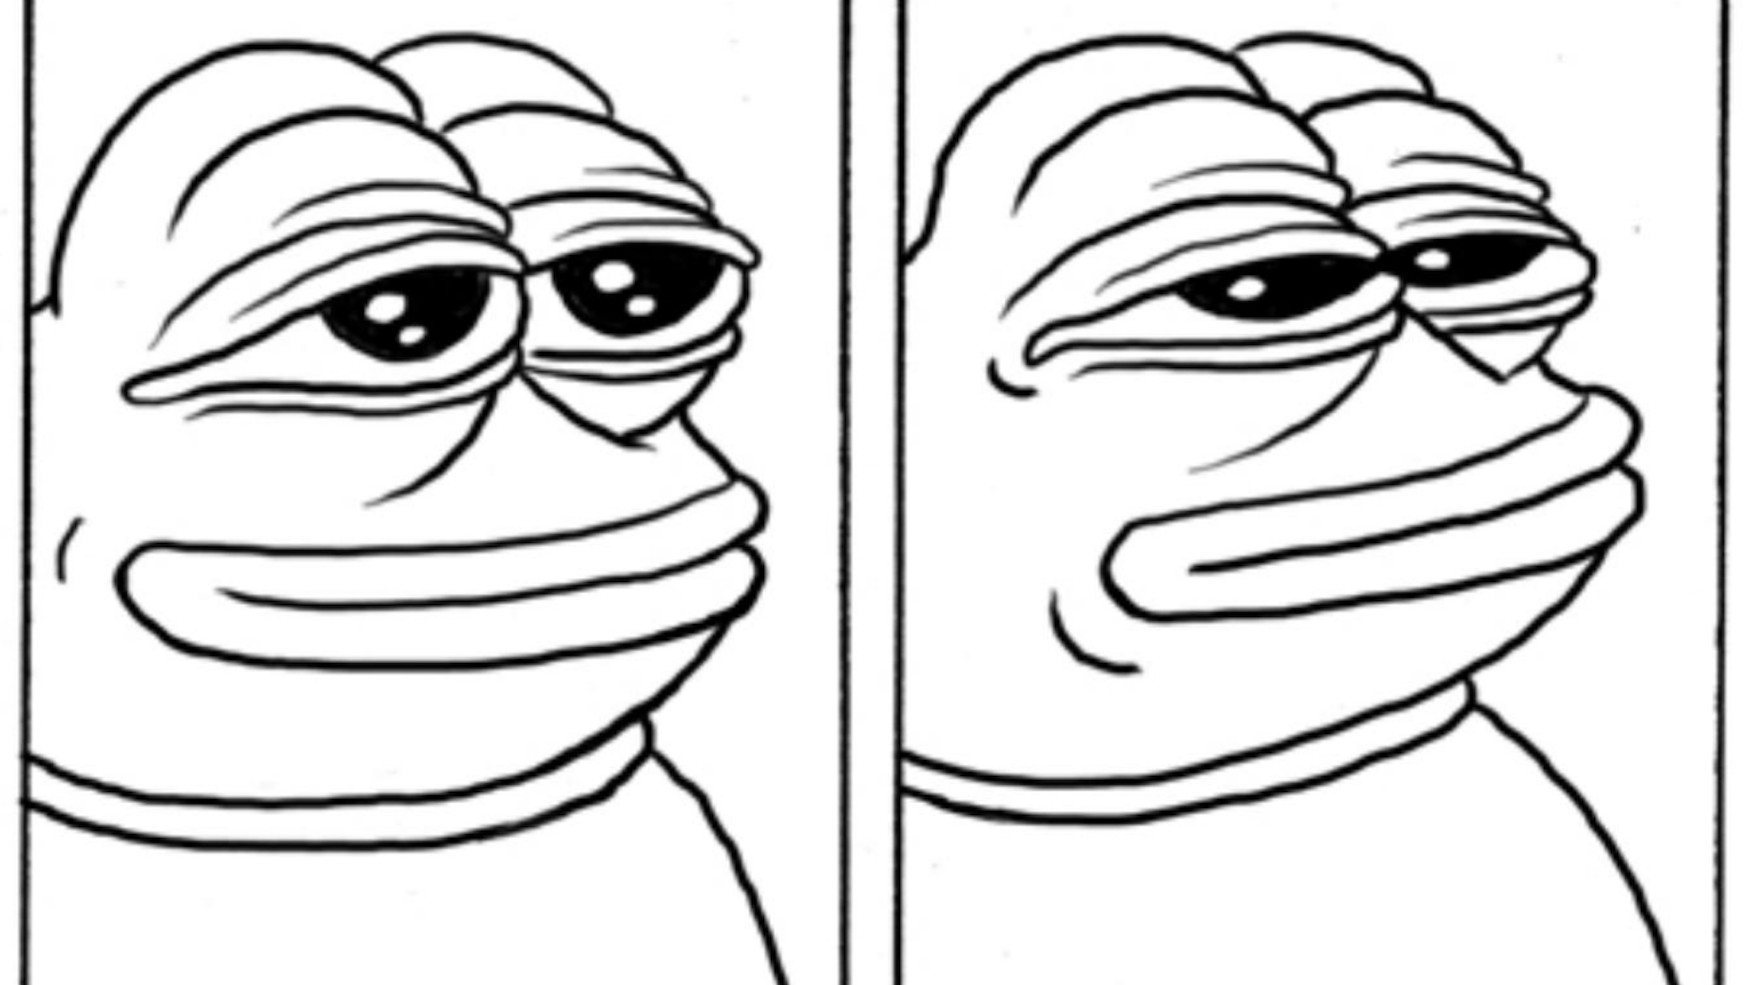 Pepe the Frog is dead, according to his creator, artist Matt Furie, who  over the weekend published a comic strip showing the character laid out in  an open ...